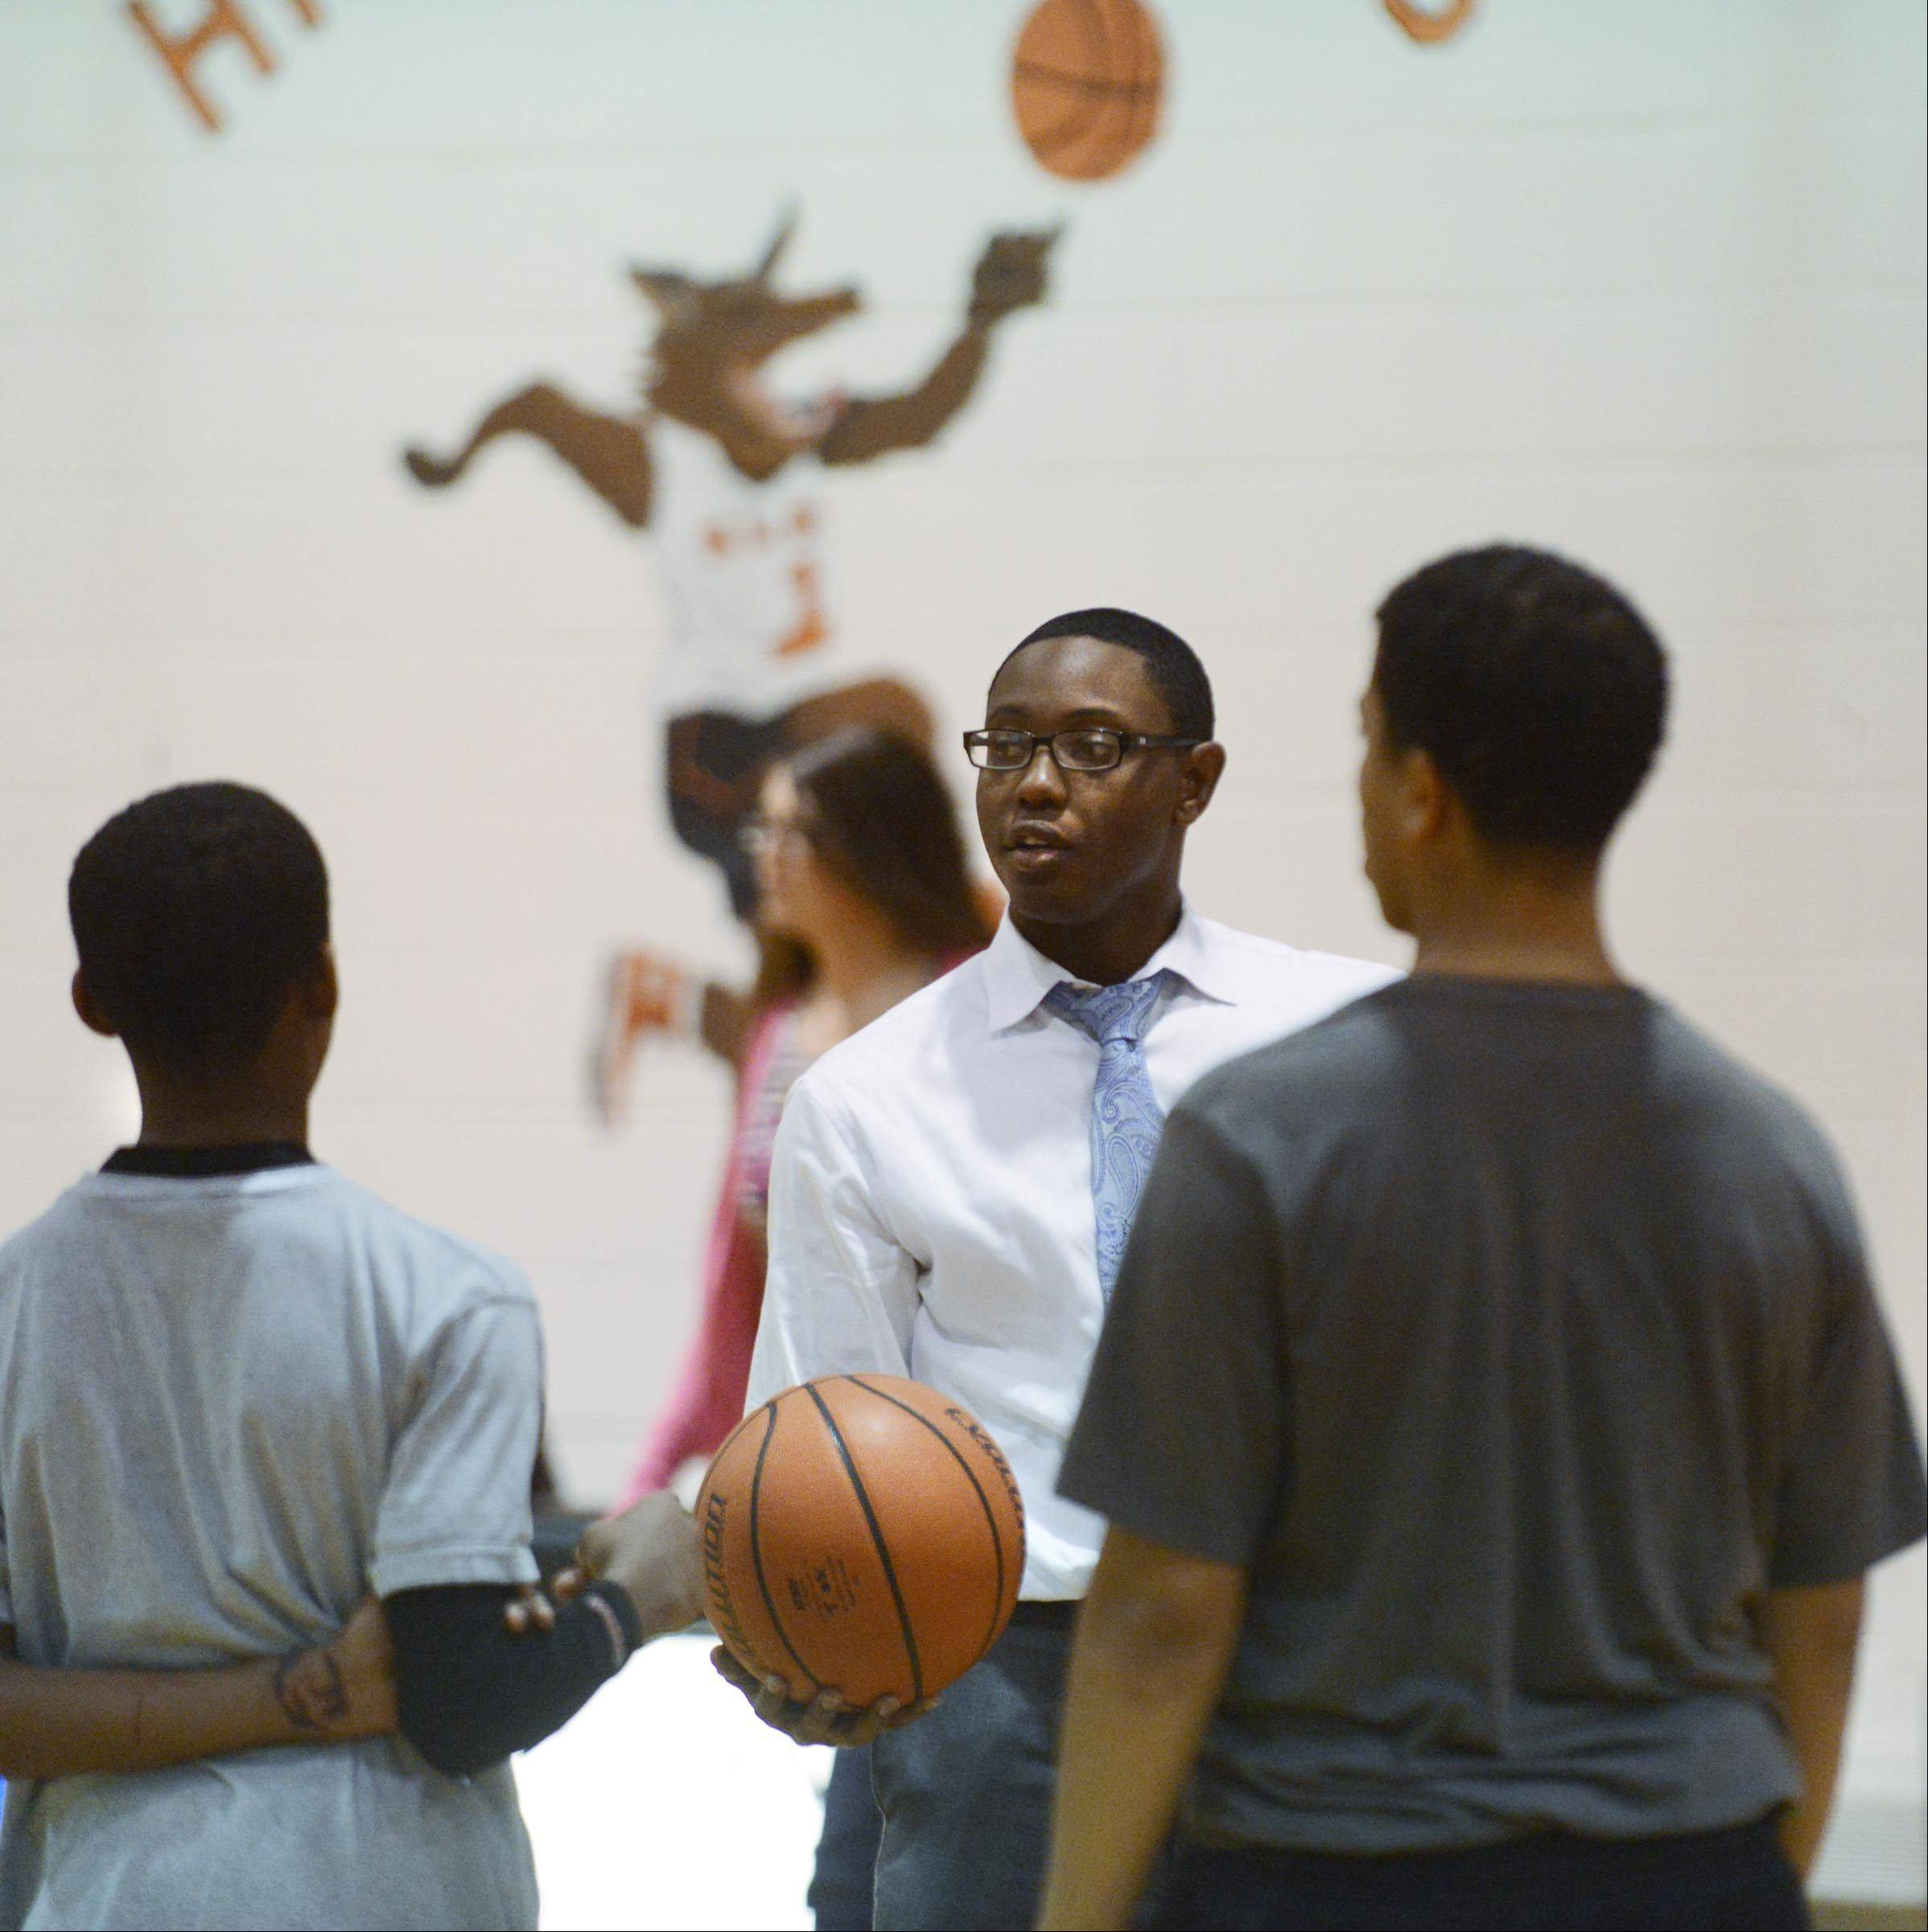 Justin Anthony and Josie Wallace, background, are founders of Epic Youth, a new Christian-based program in Elgin that focuses on using basketball to develop leadership skills and encourage kids to attend college.